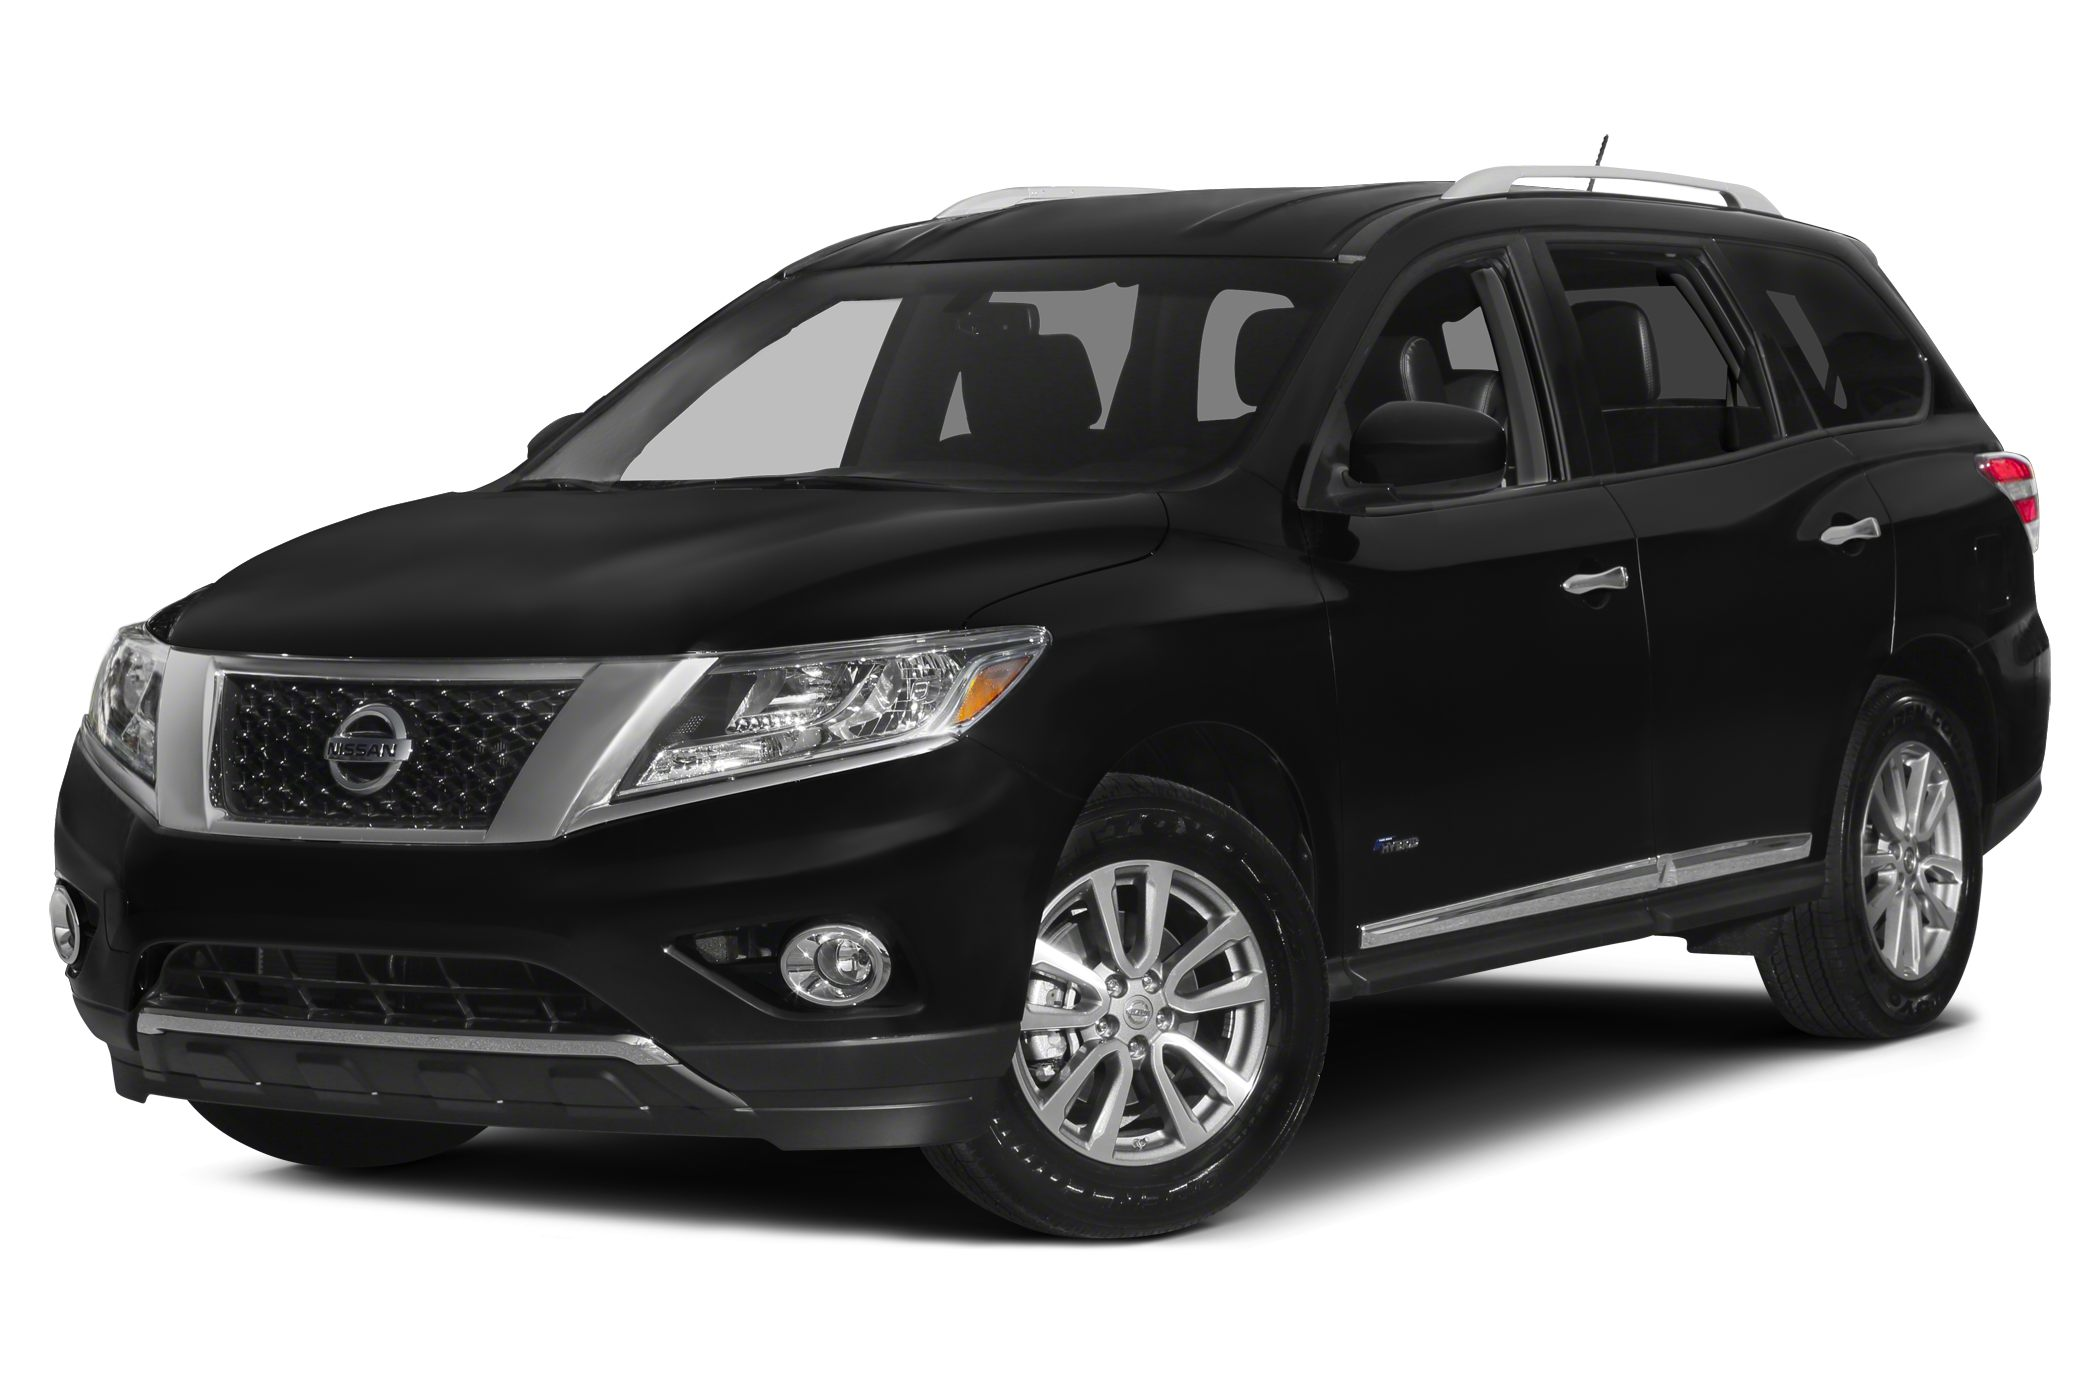 2014 Nissan Pathfinder Hybrid SL SUV for sale in Hawthorne for $43,715 with 10 miles